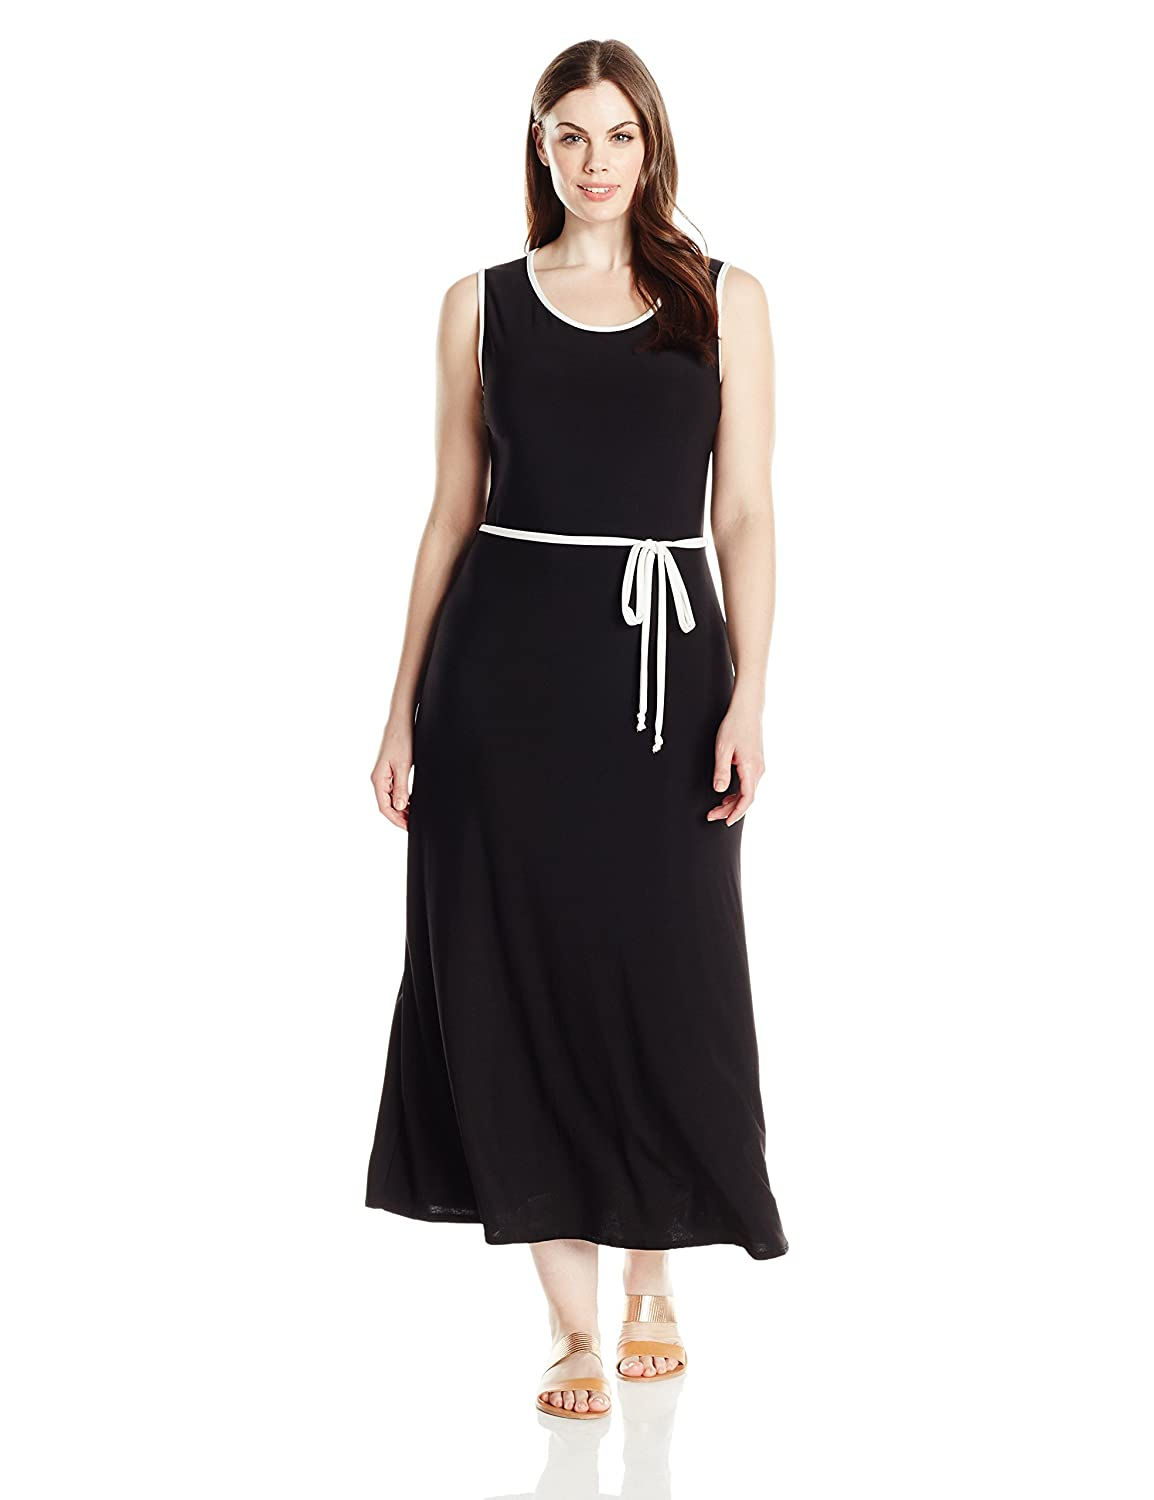 Star Vixen Women's Plus-Size Sleeveless Round Neck Maxi Dress with Color Piping 3729-ITX